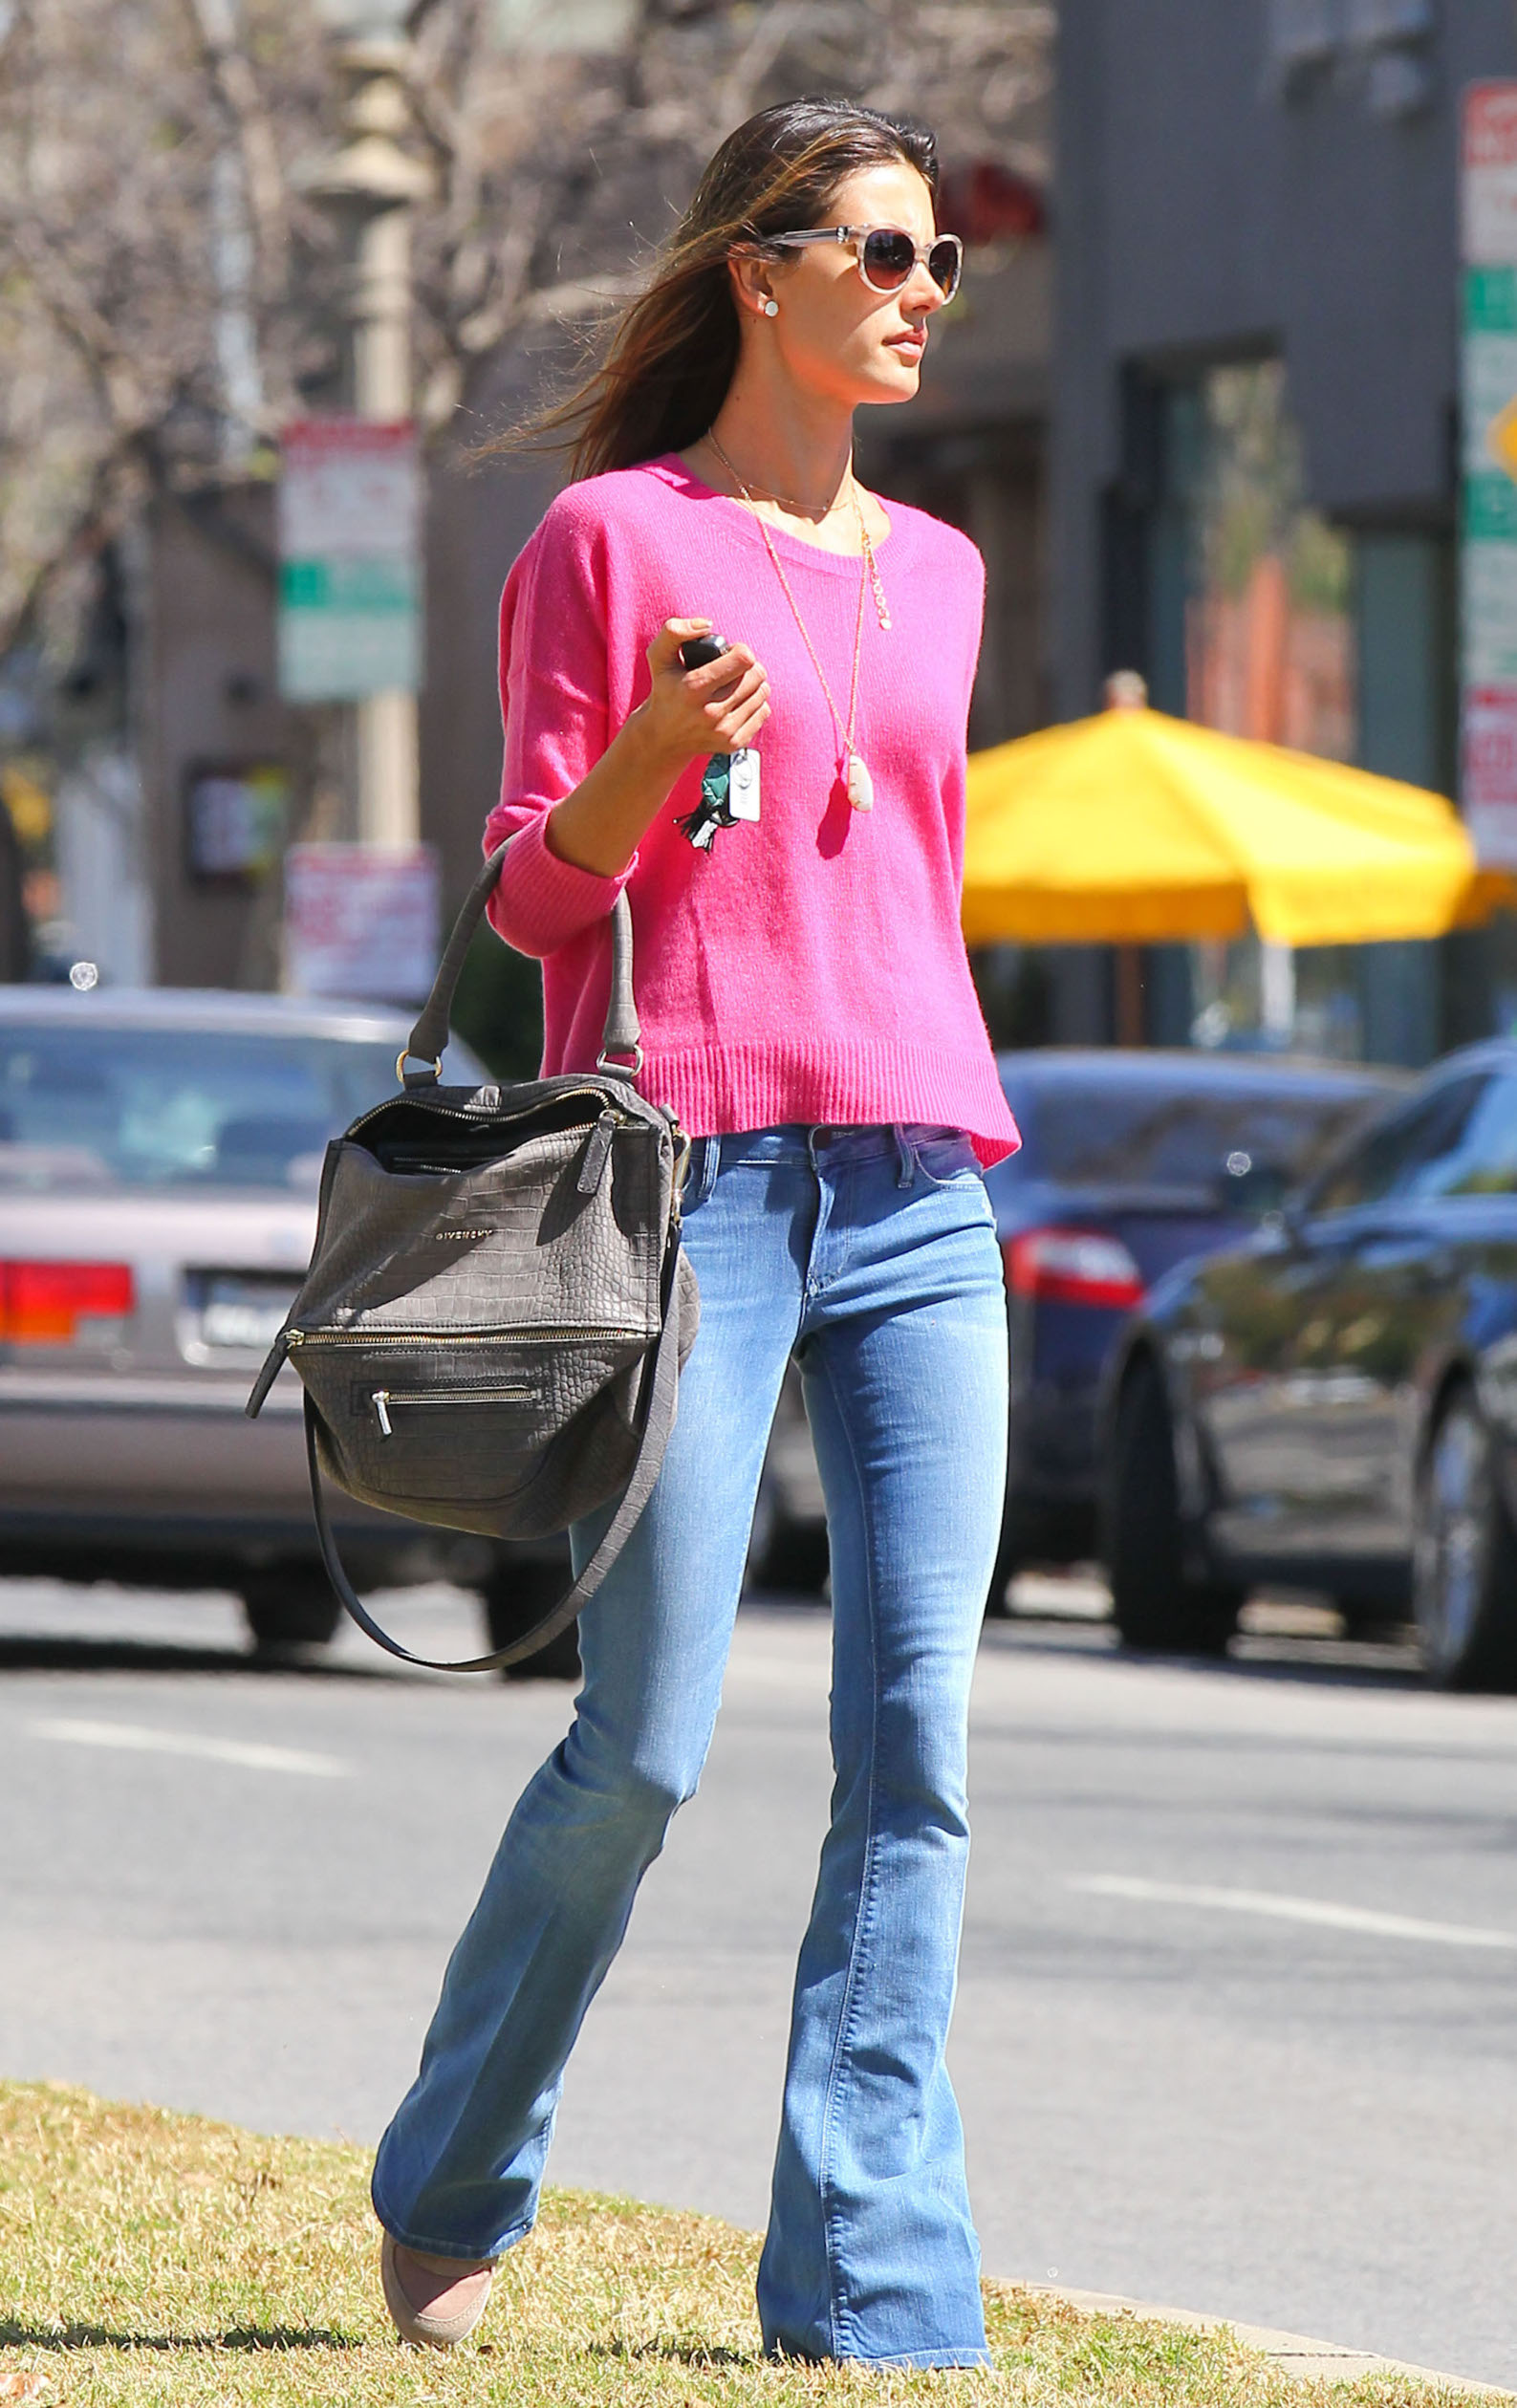 Exclusive... 51036560 Victoria's Secret model Alessandra Ambrosio out and about in Brentwood, California on March 13, 2013., Image: 156053035, License: Rights-managed, Restrictions: , Model Release: no, Credit line: Stoianov / Backgrid USA / Profimedia